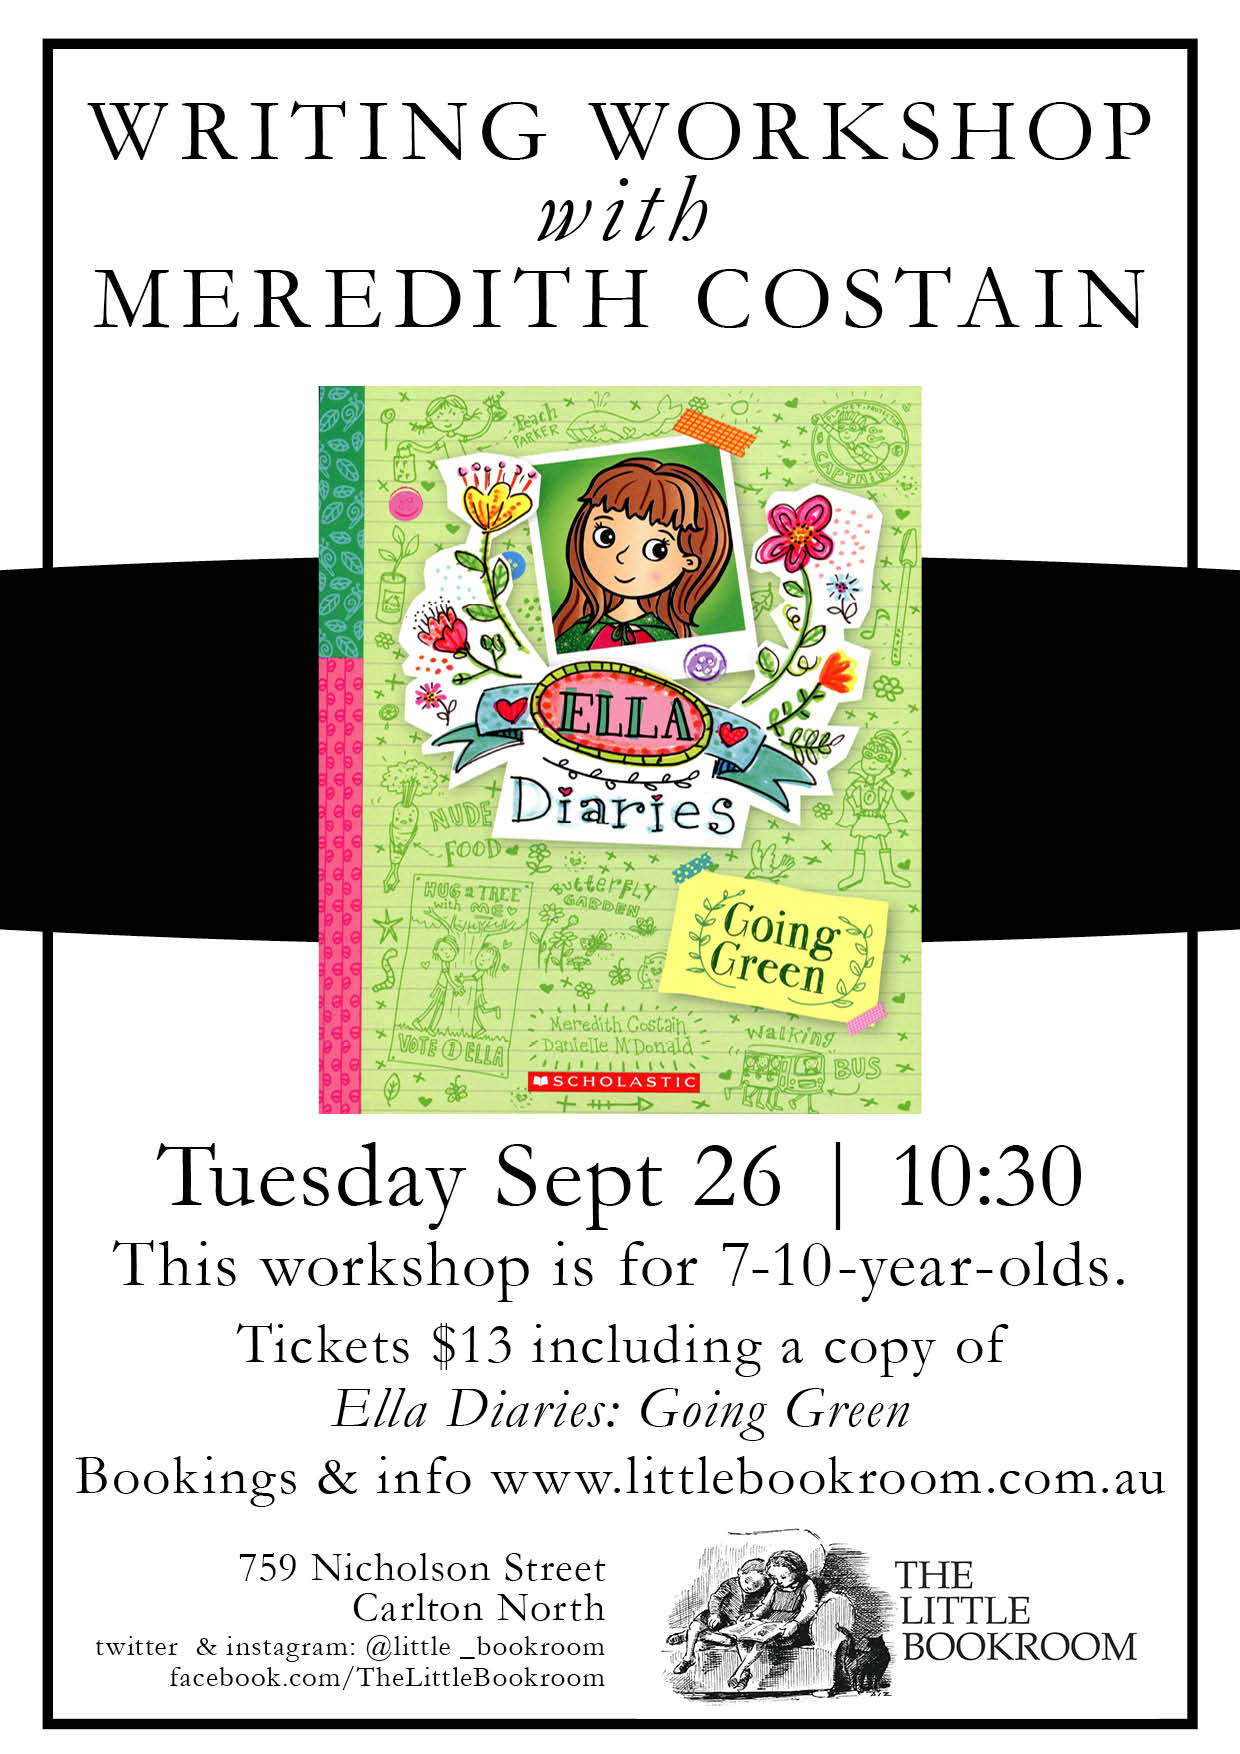 Writing Workshop Meredith Costain Tuesday September 26 10:30am